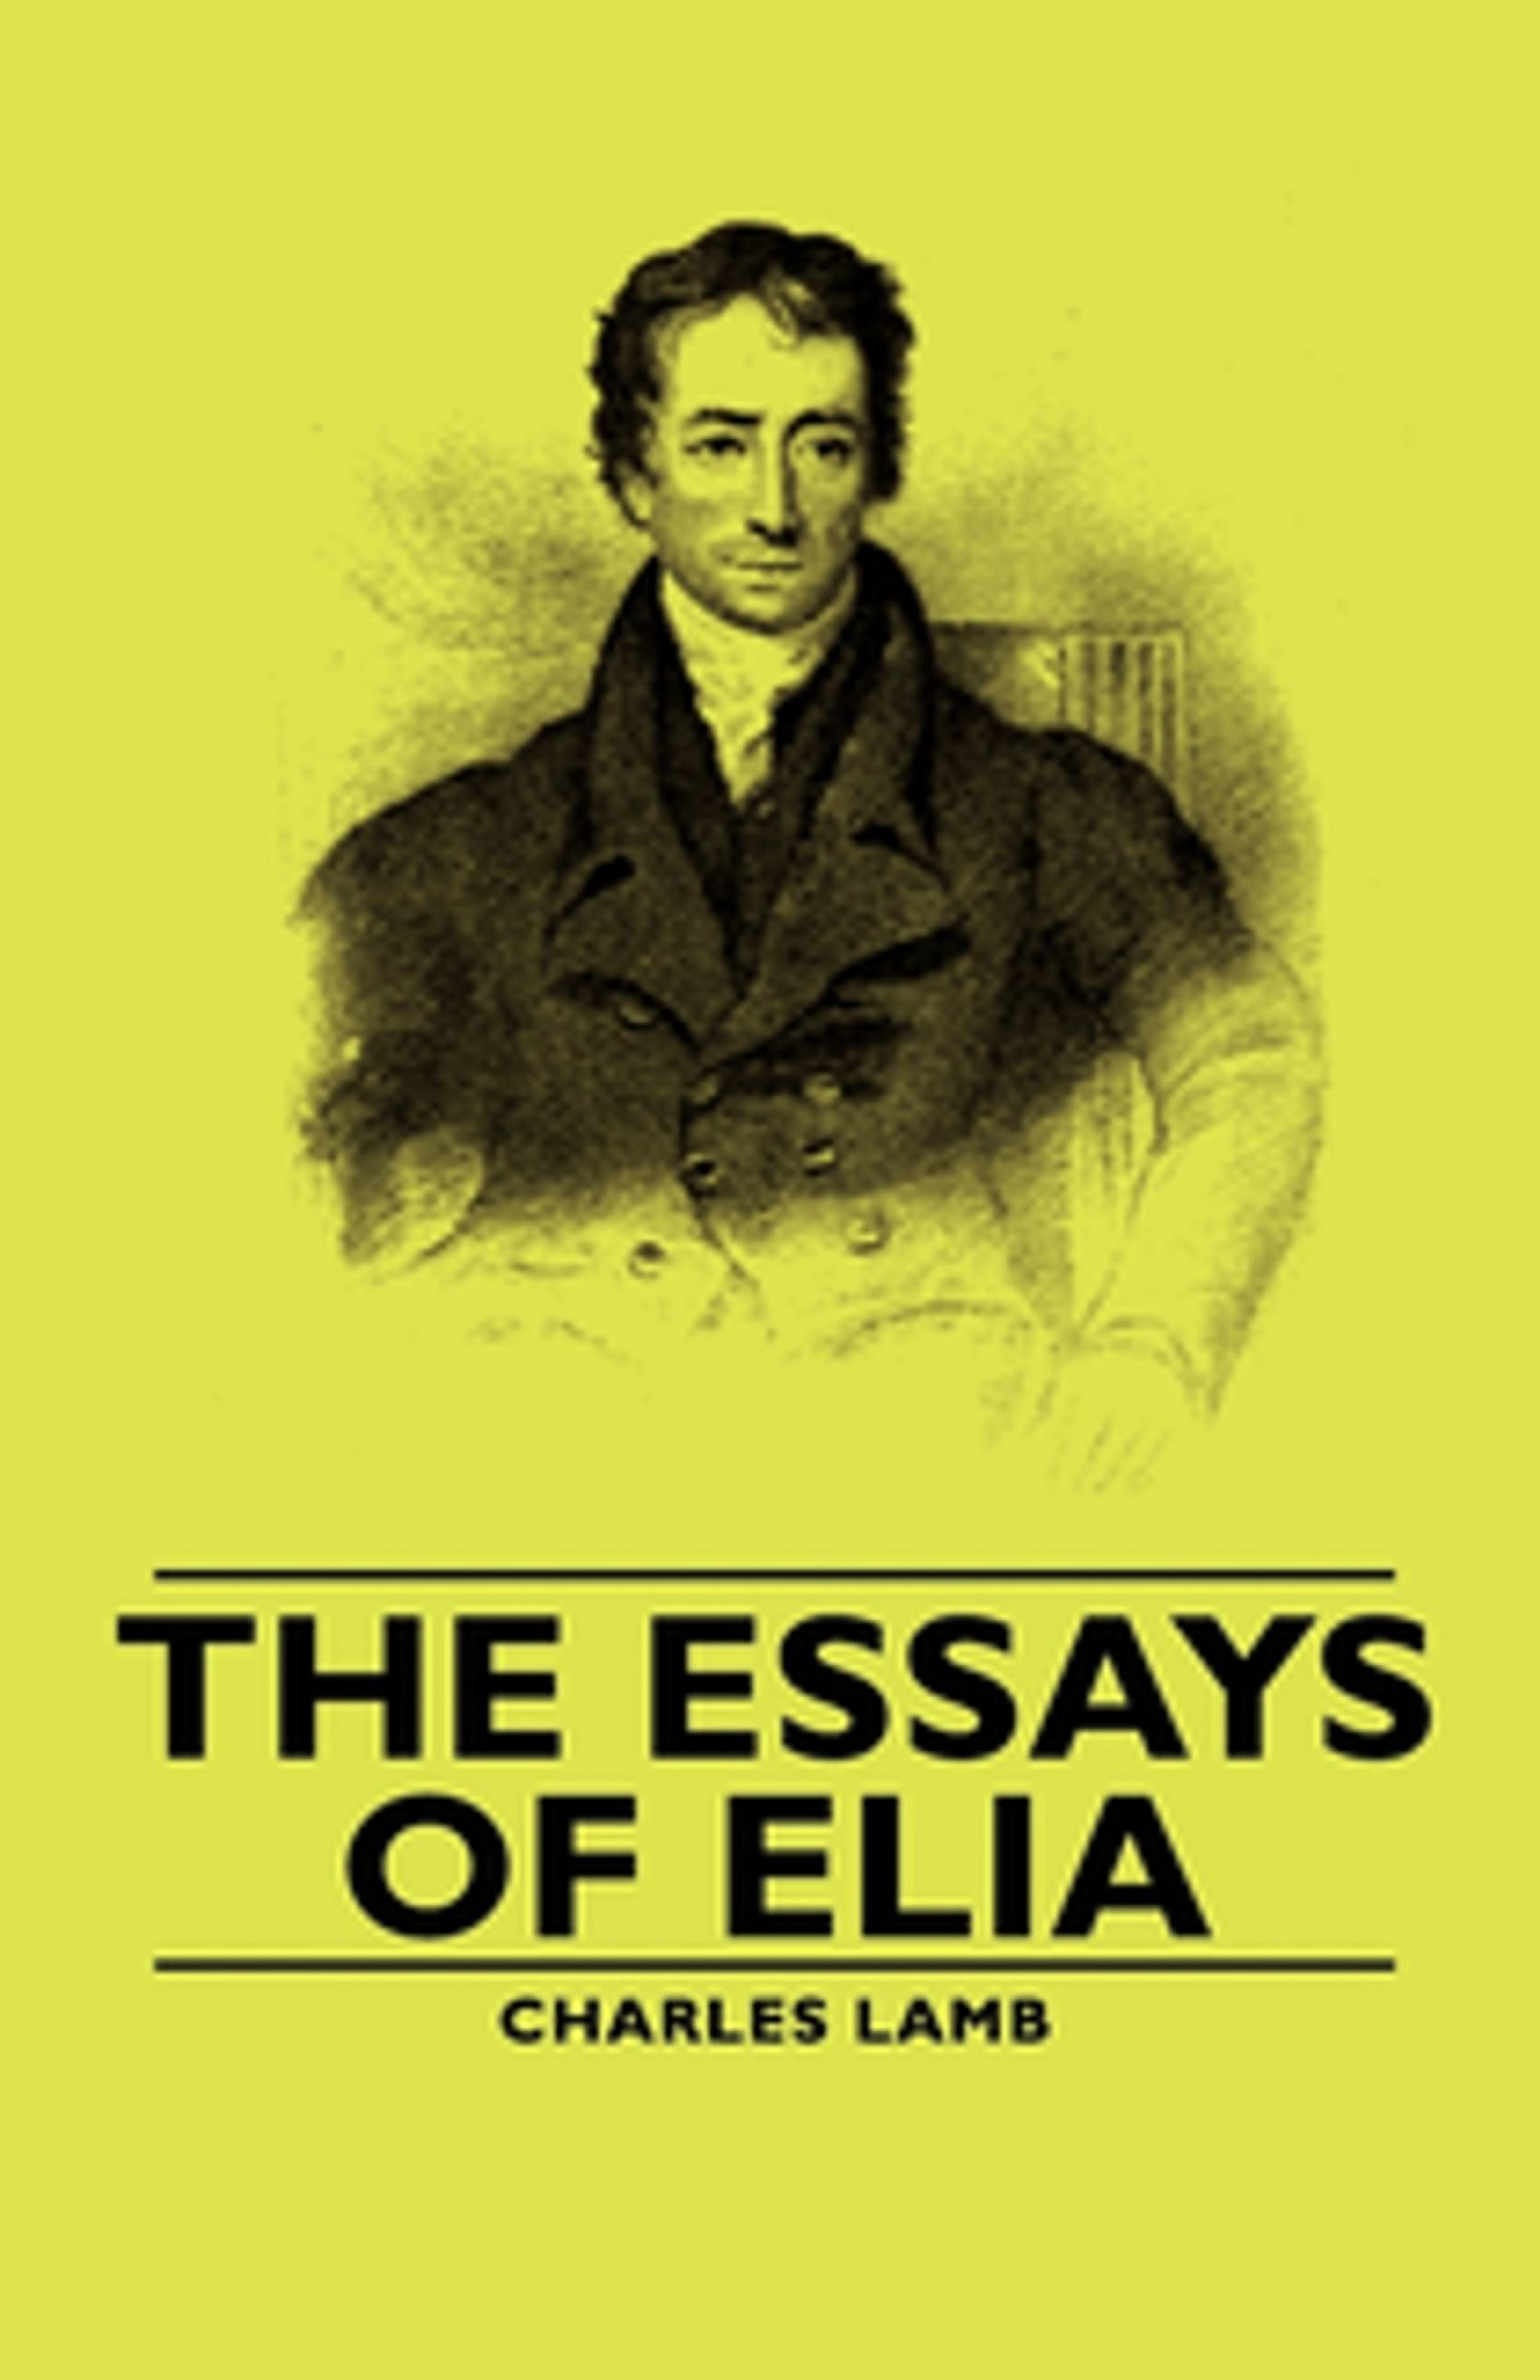 004 Essays Of Elia Essay Example Striking Epub Summary Text Pdf 1920